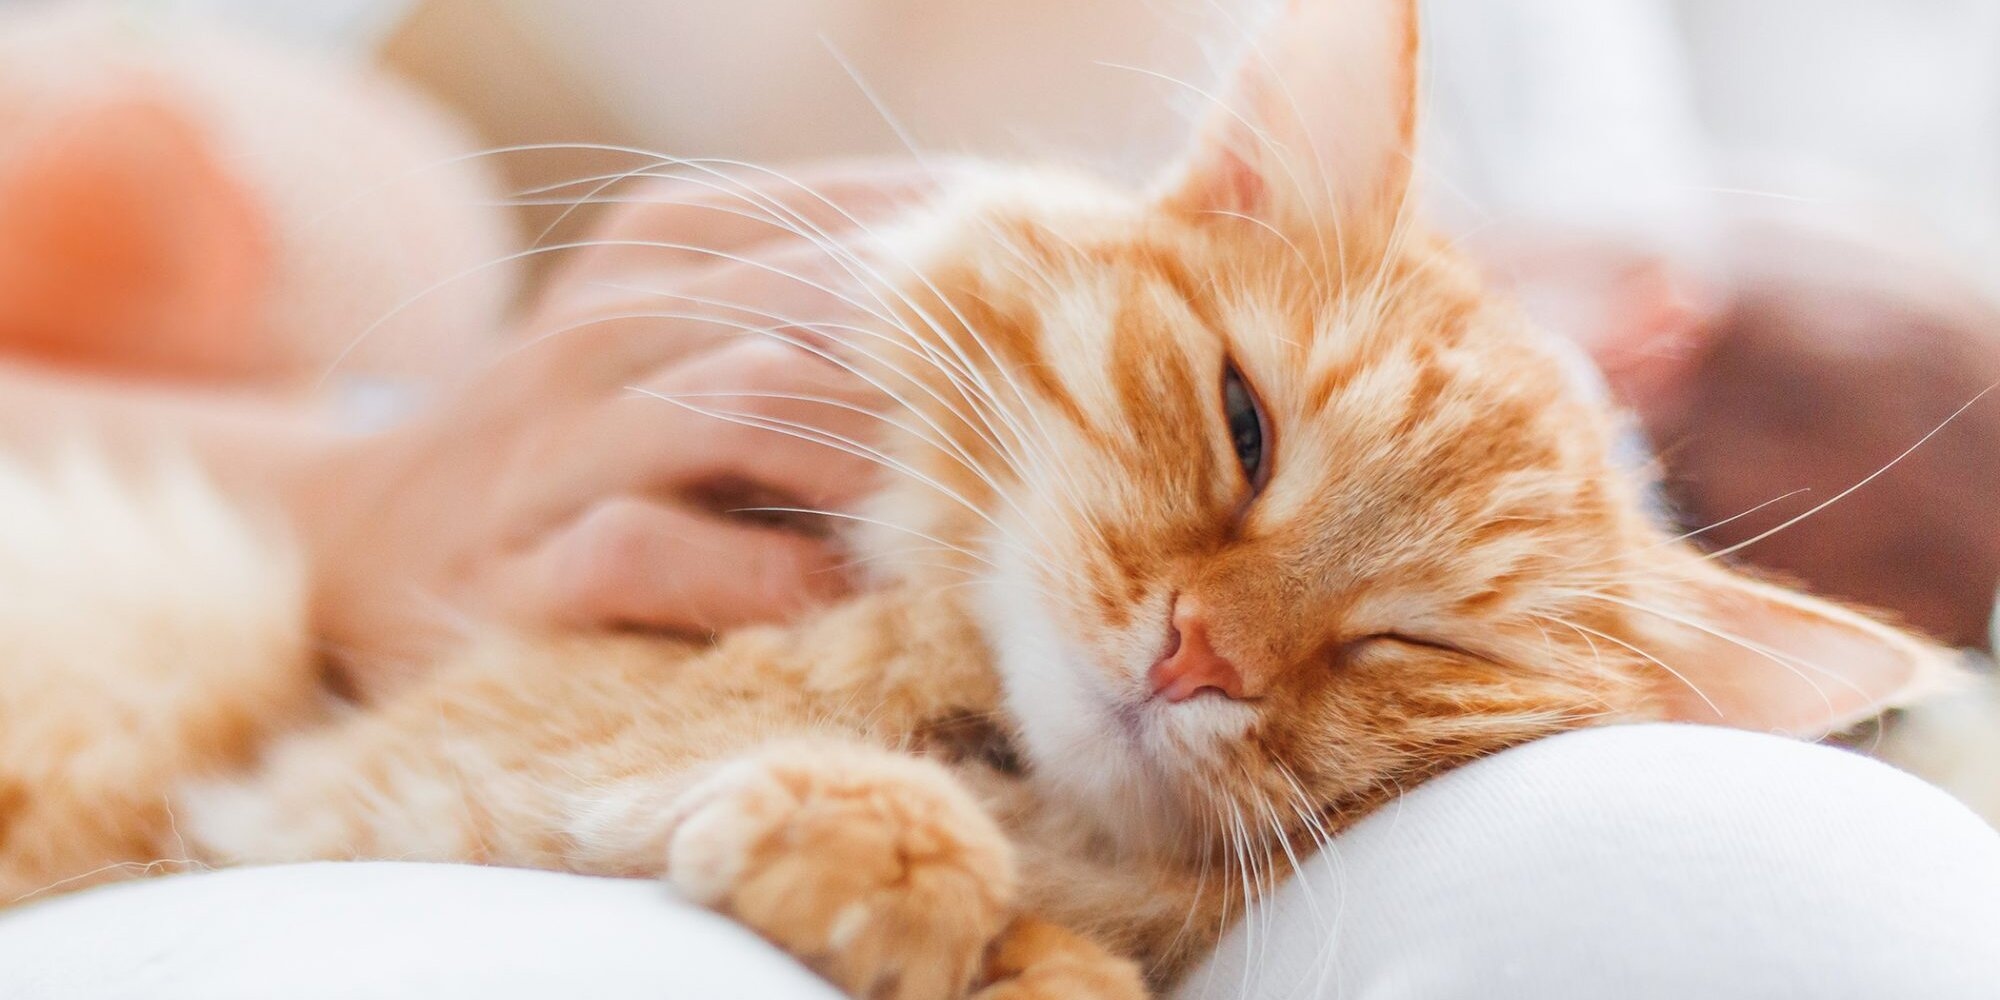 How to get a therapy cat: What Is a Therapy Cat? todocat.com